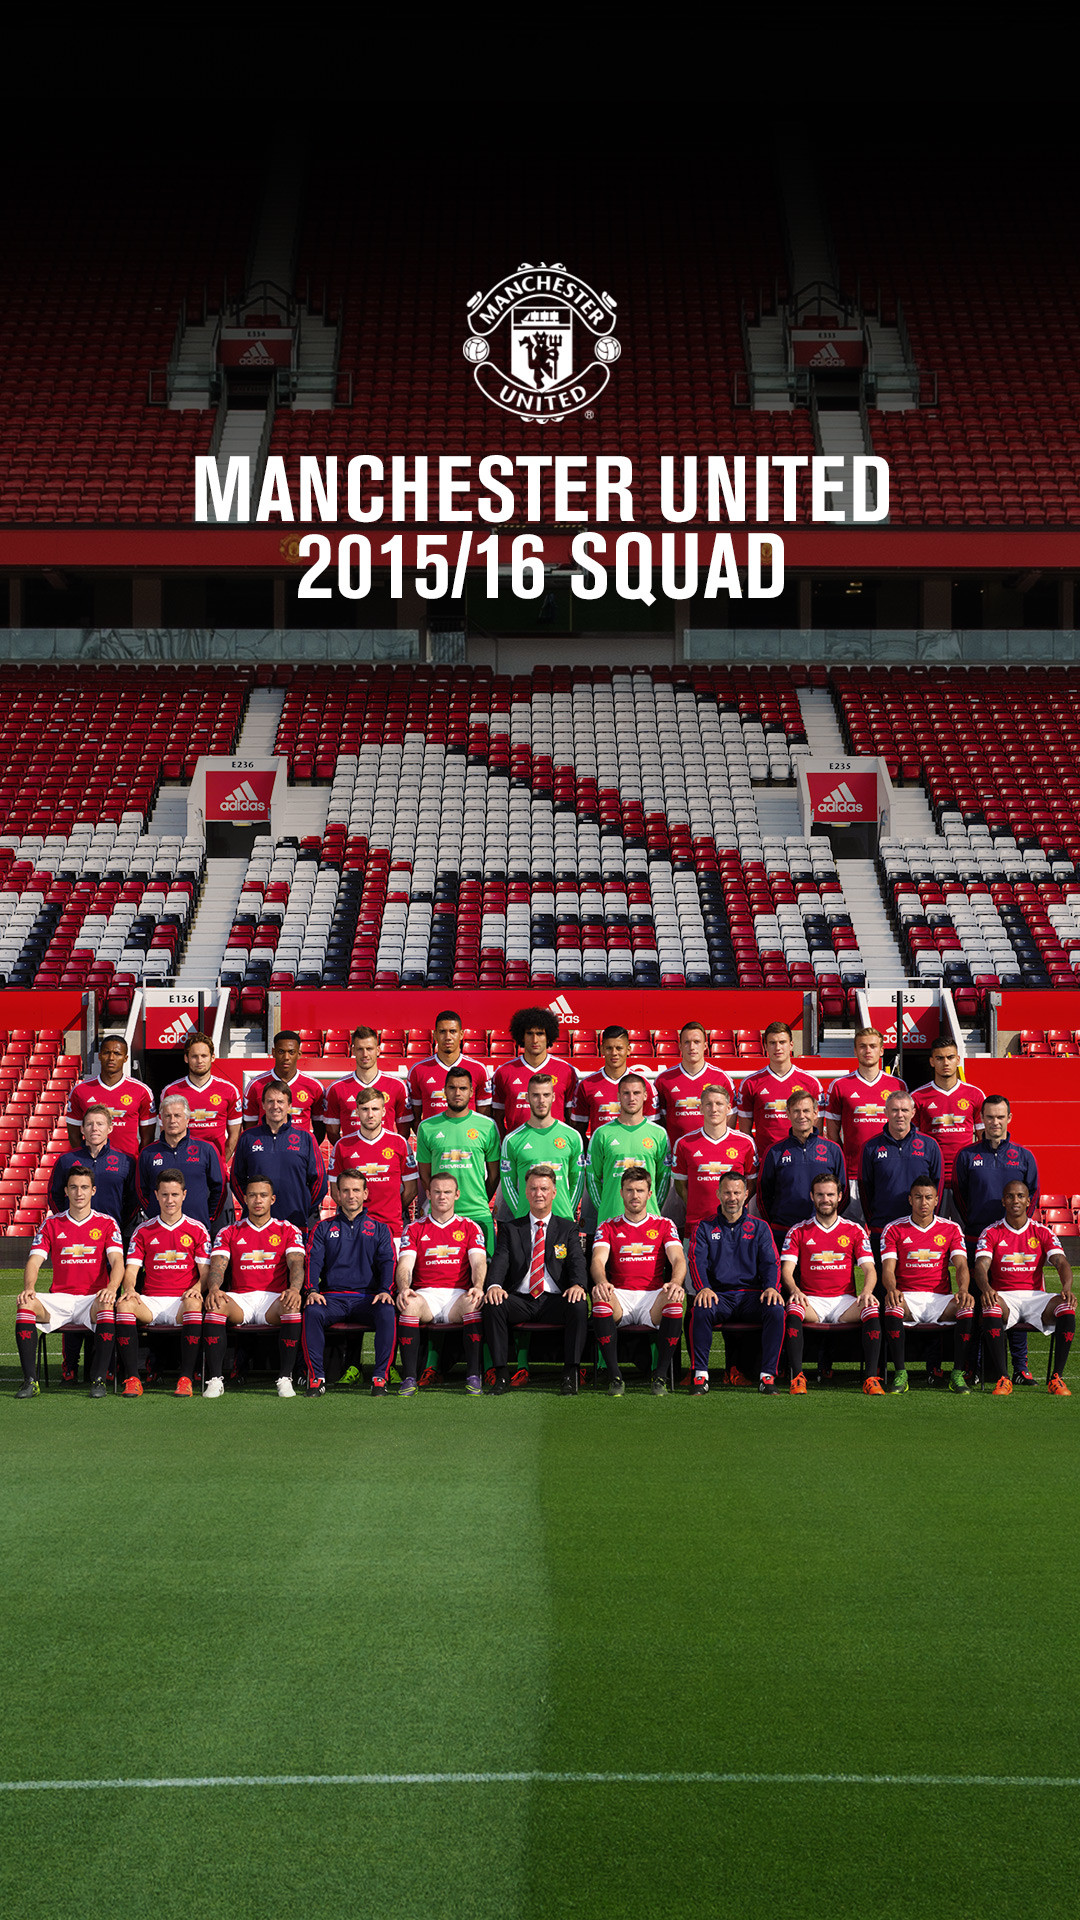 Manchester United Fc Wallpapers iPhone 6 Plus. iPhone 6 · iPhone 6 PLUS